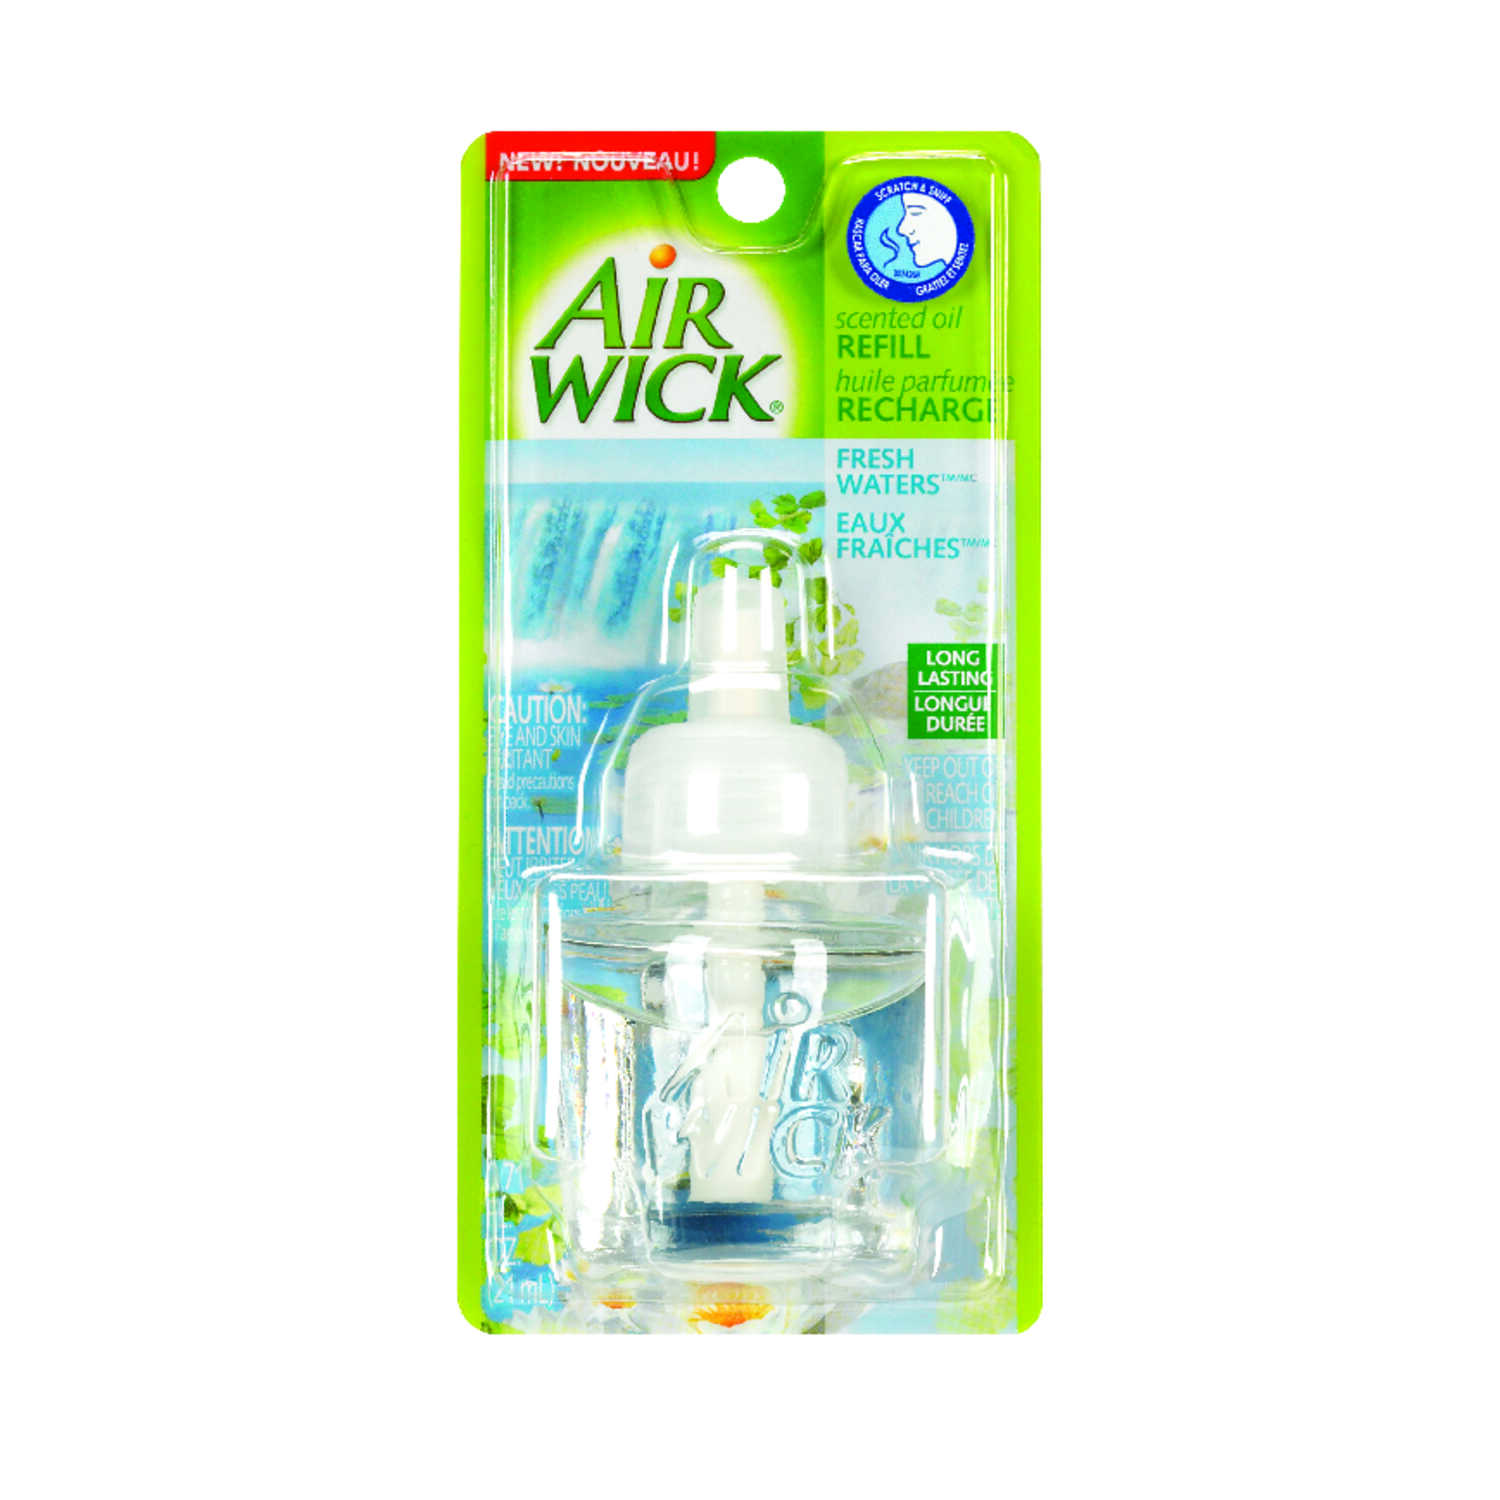 Air Wick  Fresh Waters Scent Air Freshener Refill  0.67 oz. Aerosol